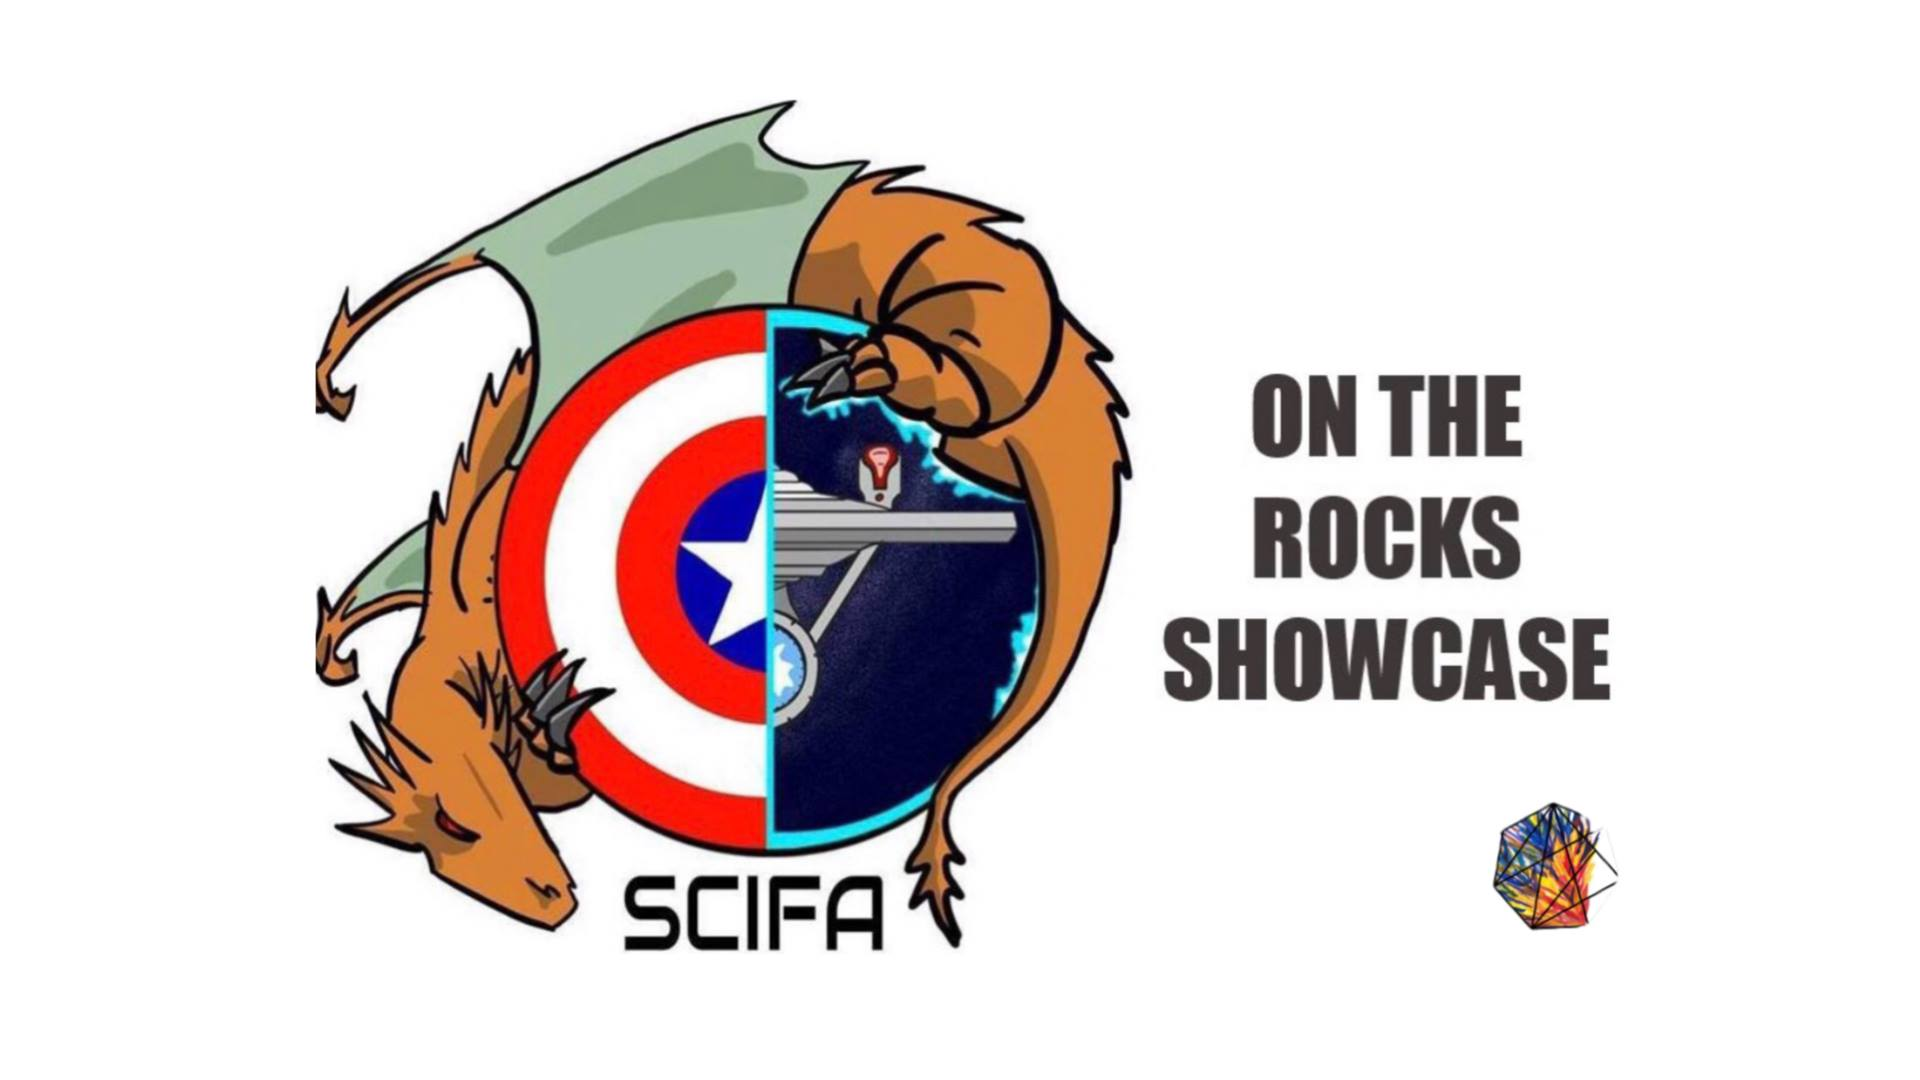 Scifa Showcase: Reviewed